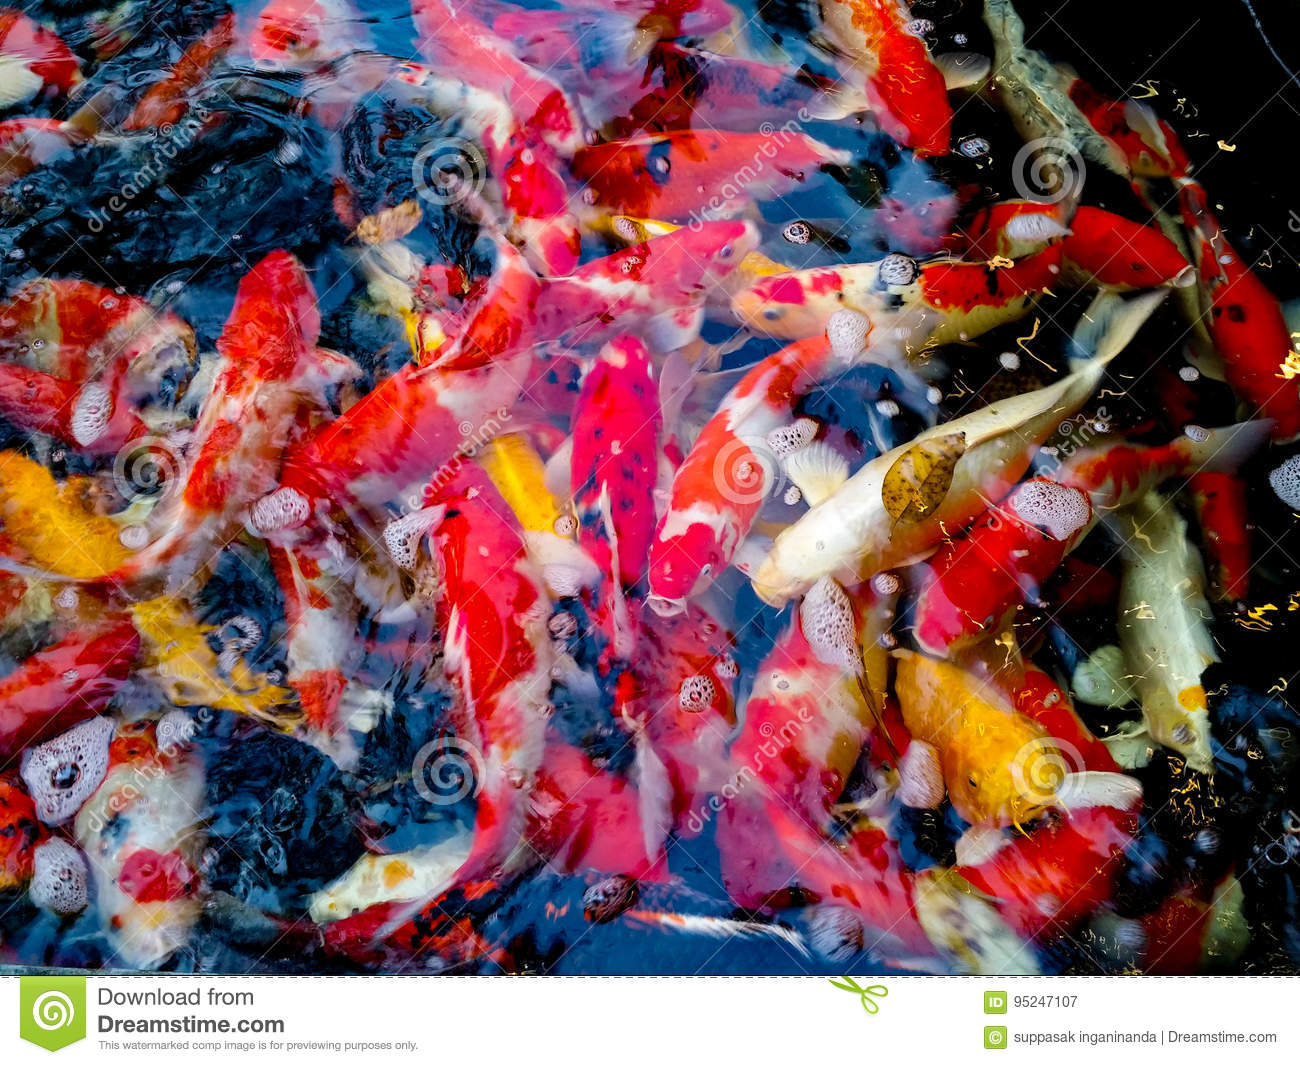 The Beauty And Colorful Of The Crayfish. Stock Image - Image of ...